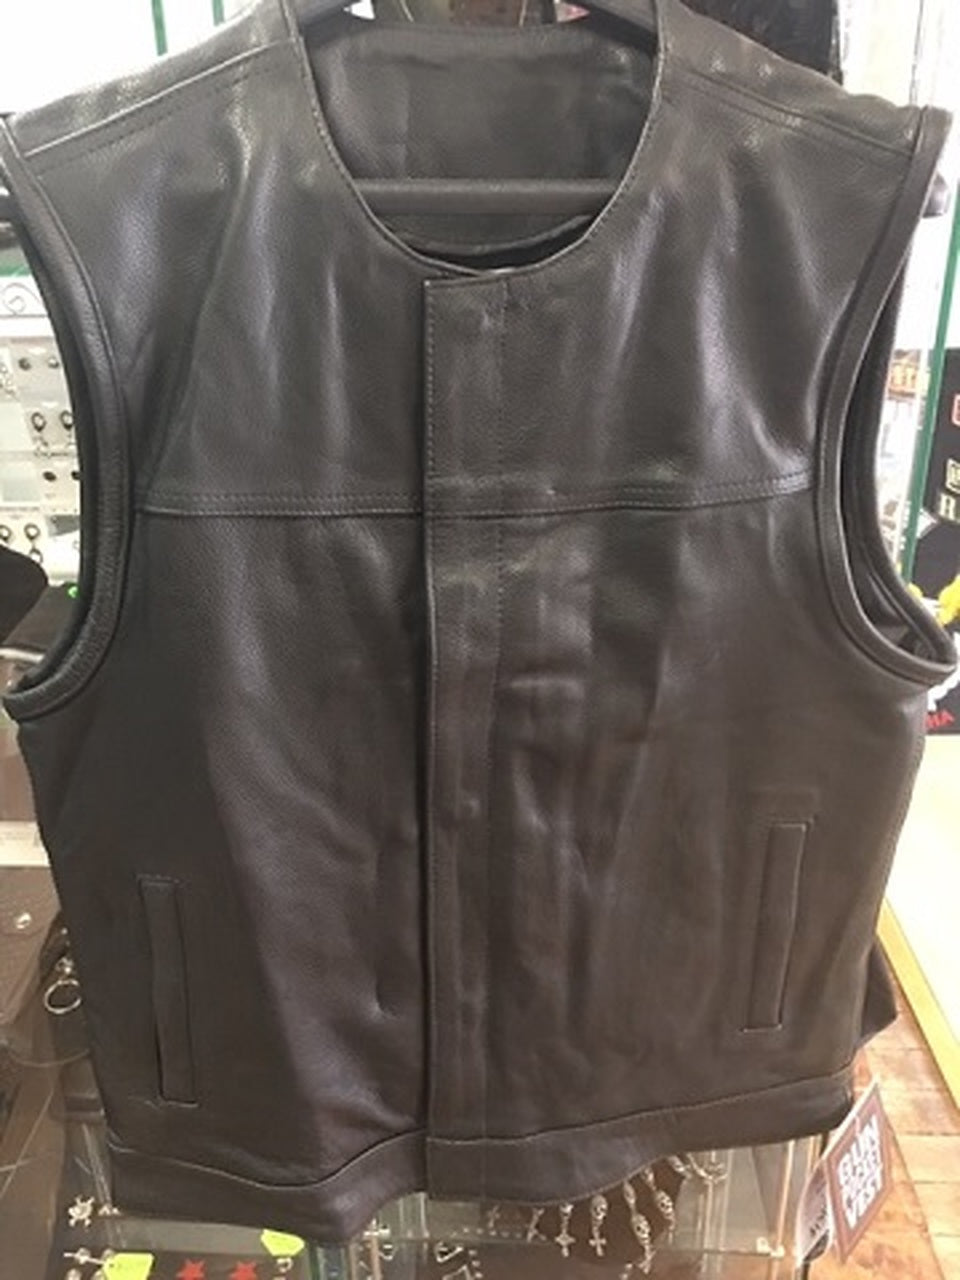 Men's Leather Vest Without Top Pockets Has No Collar 6674.00